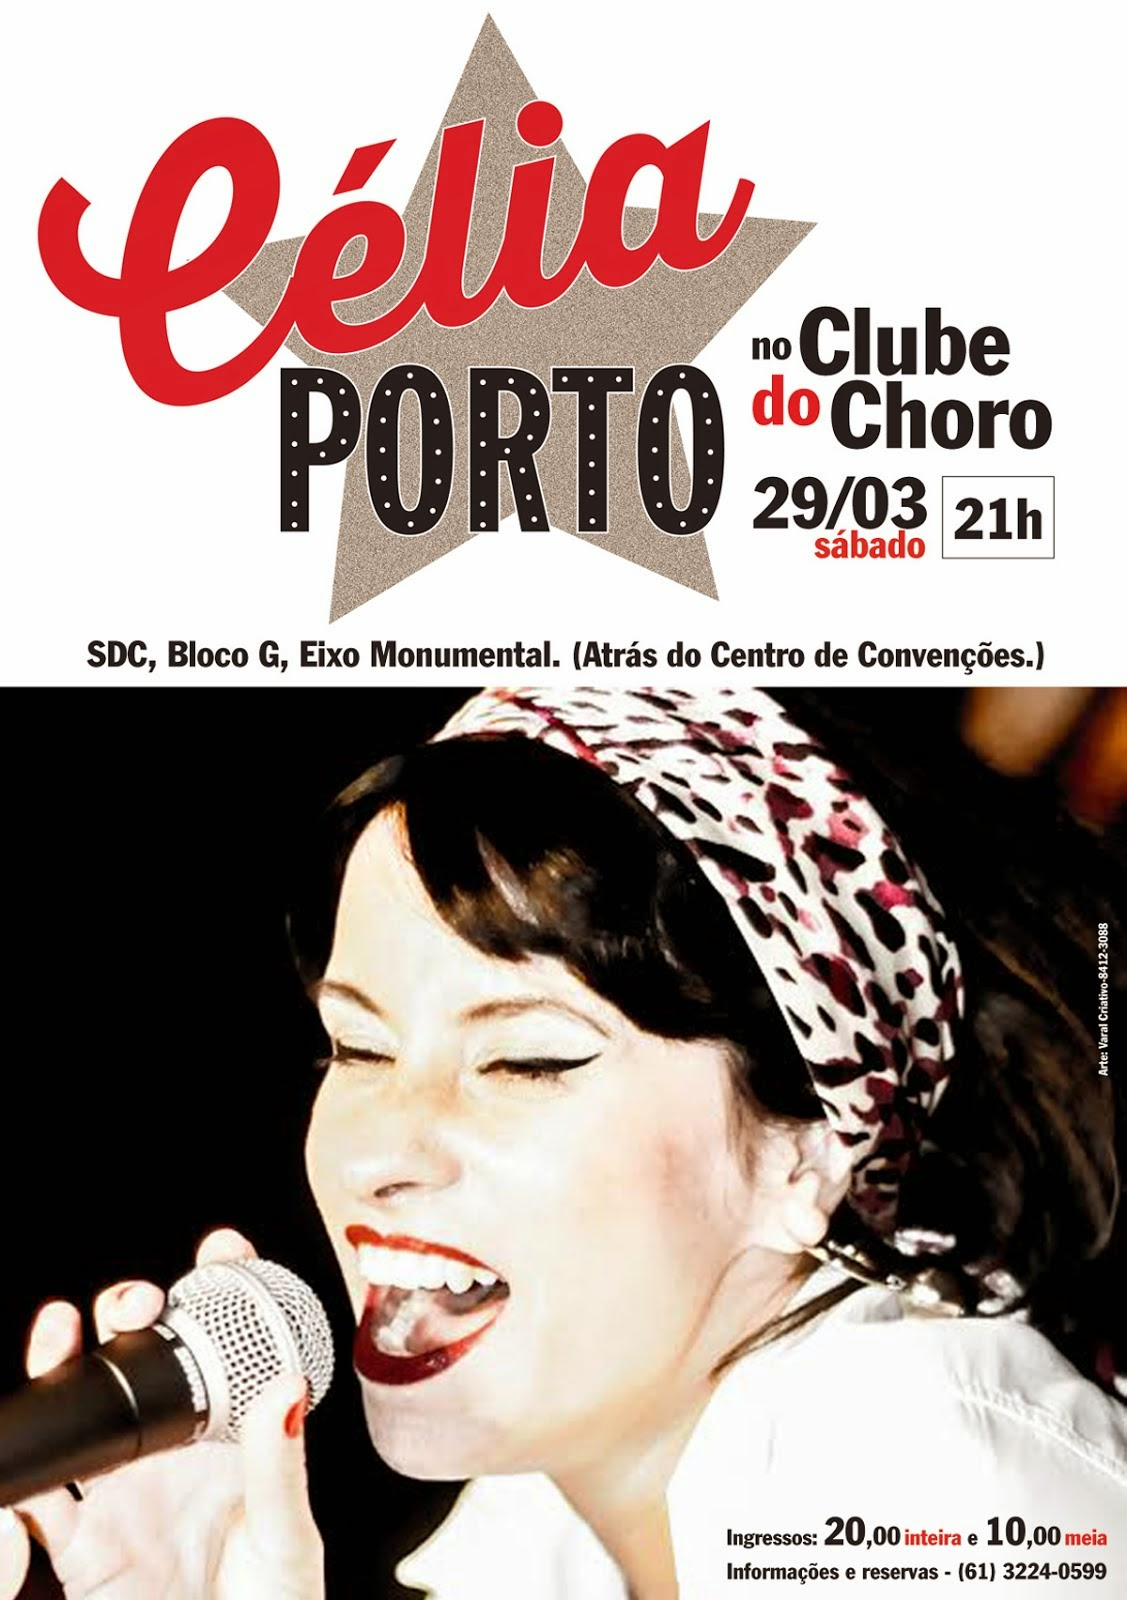 CÉLIA PORTO NO CLUBE DO CHORO